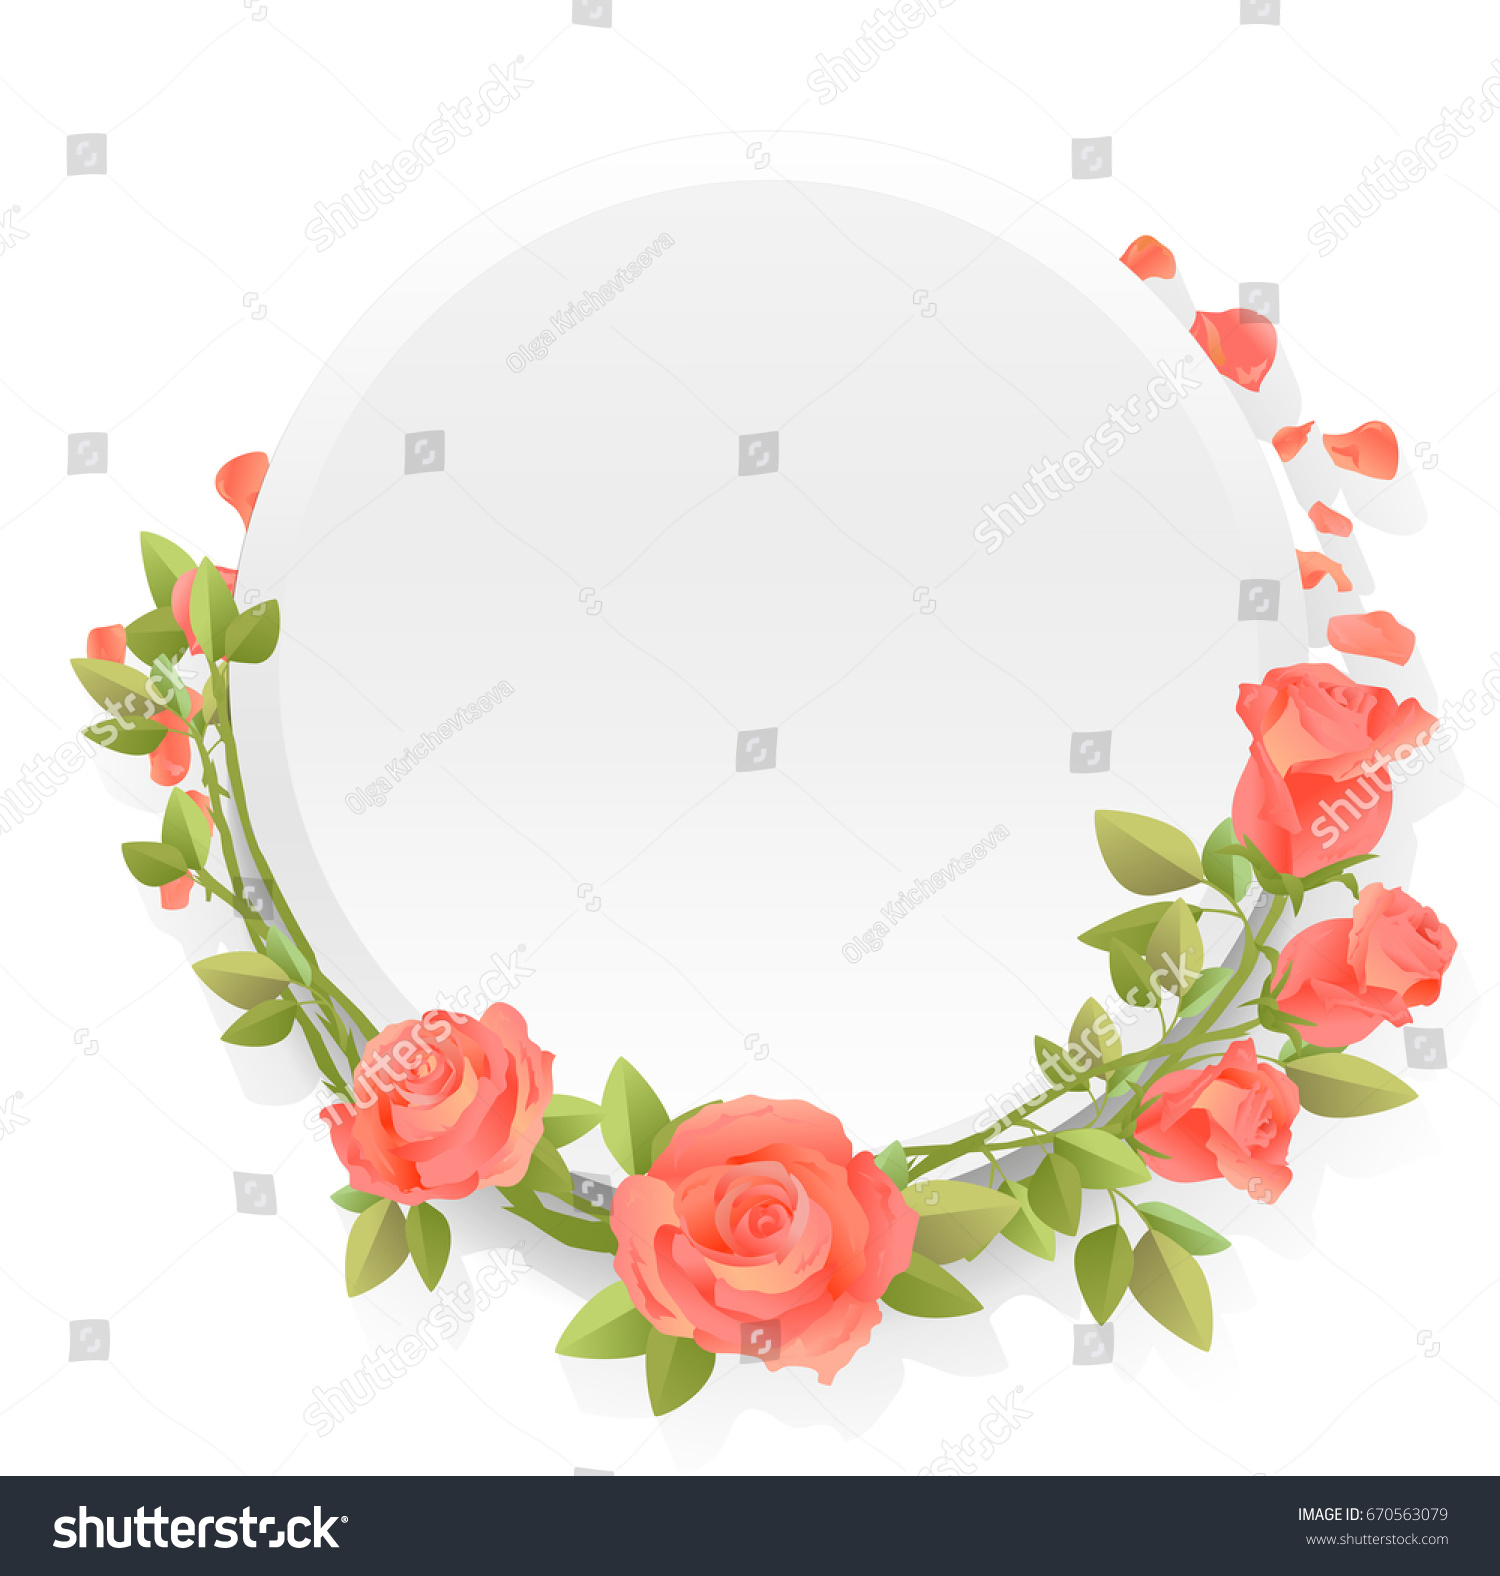 Round Frame Flowers Pink Red Roses Stock Vector 670563079 - Shutterstock